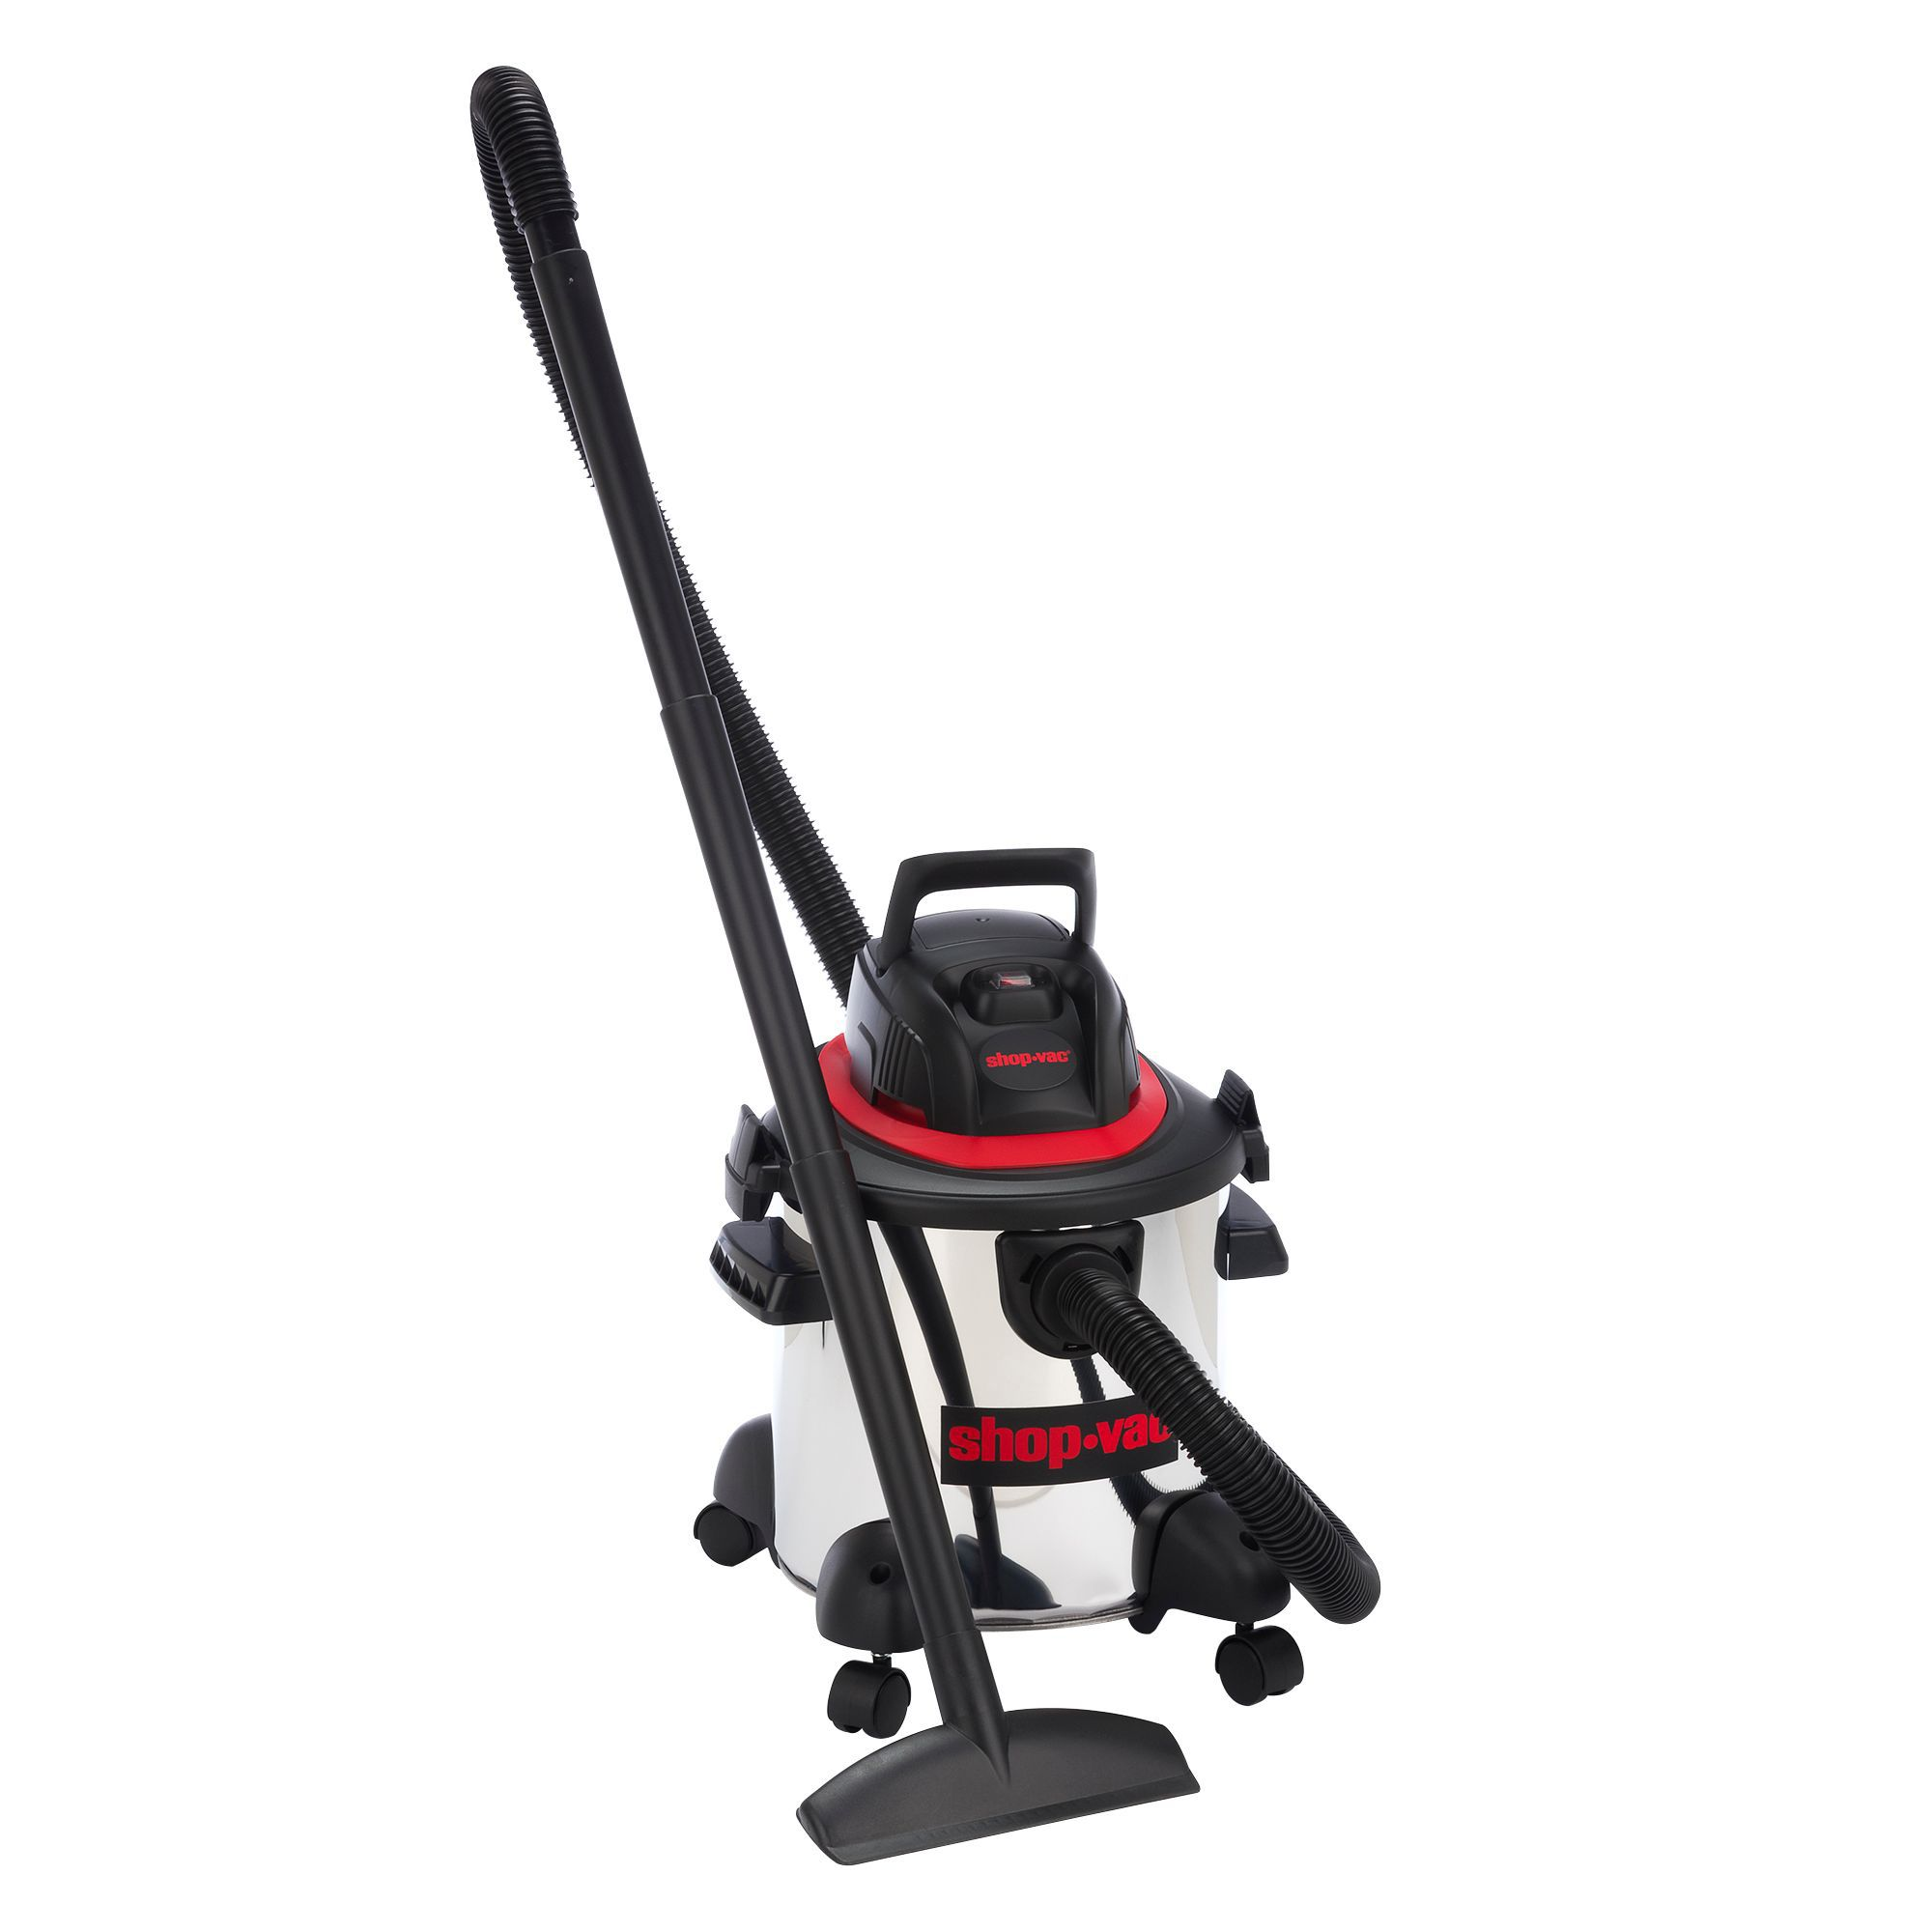 Shop Vac Life Corded Bagged Wet & Dry Vacuum Cleaner Mca11-sq11